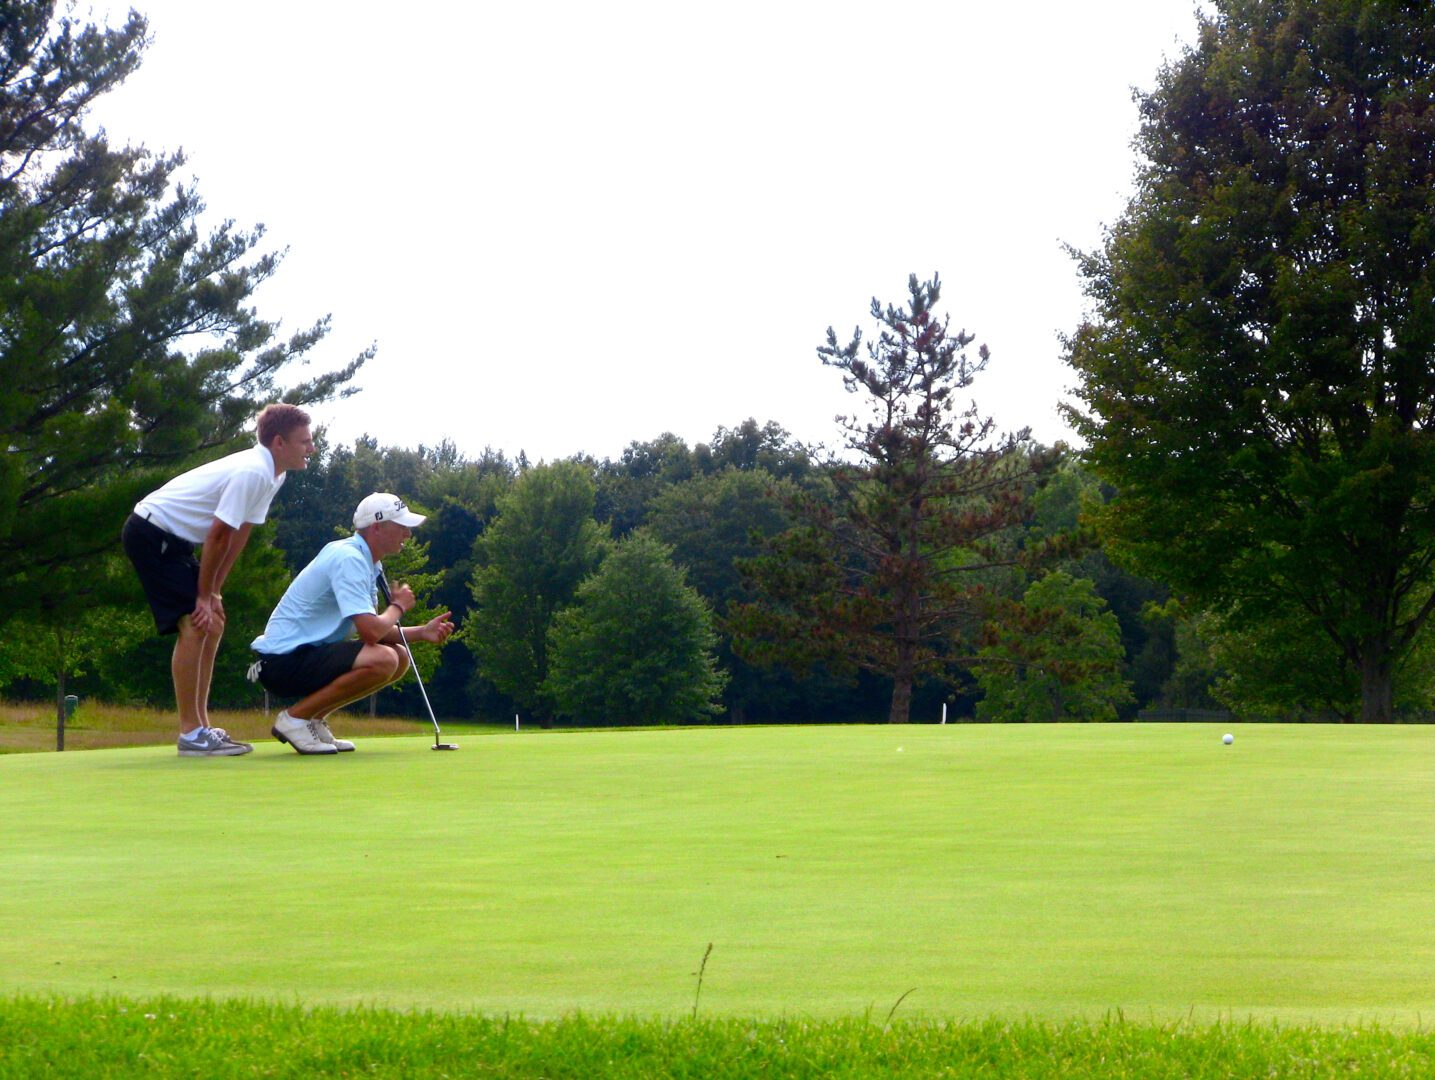 Sunday's final round of the Henderson Memorial golf tournament turned into a family affair [VIDEO]